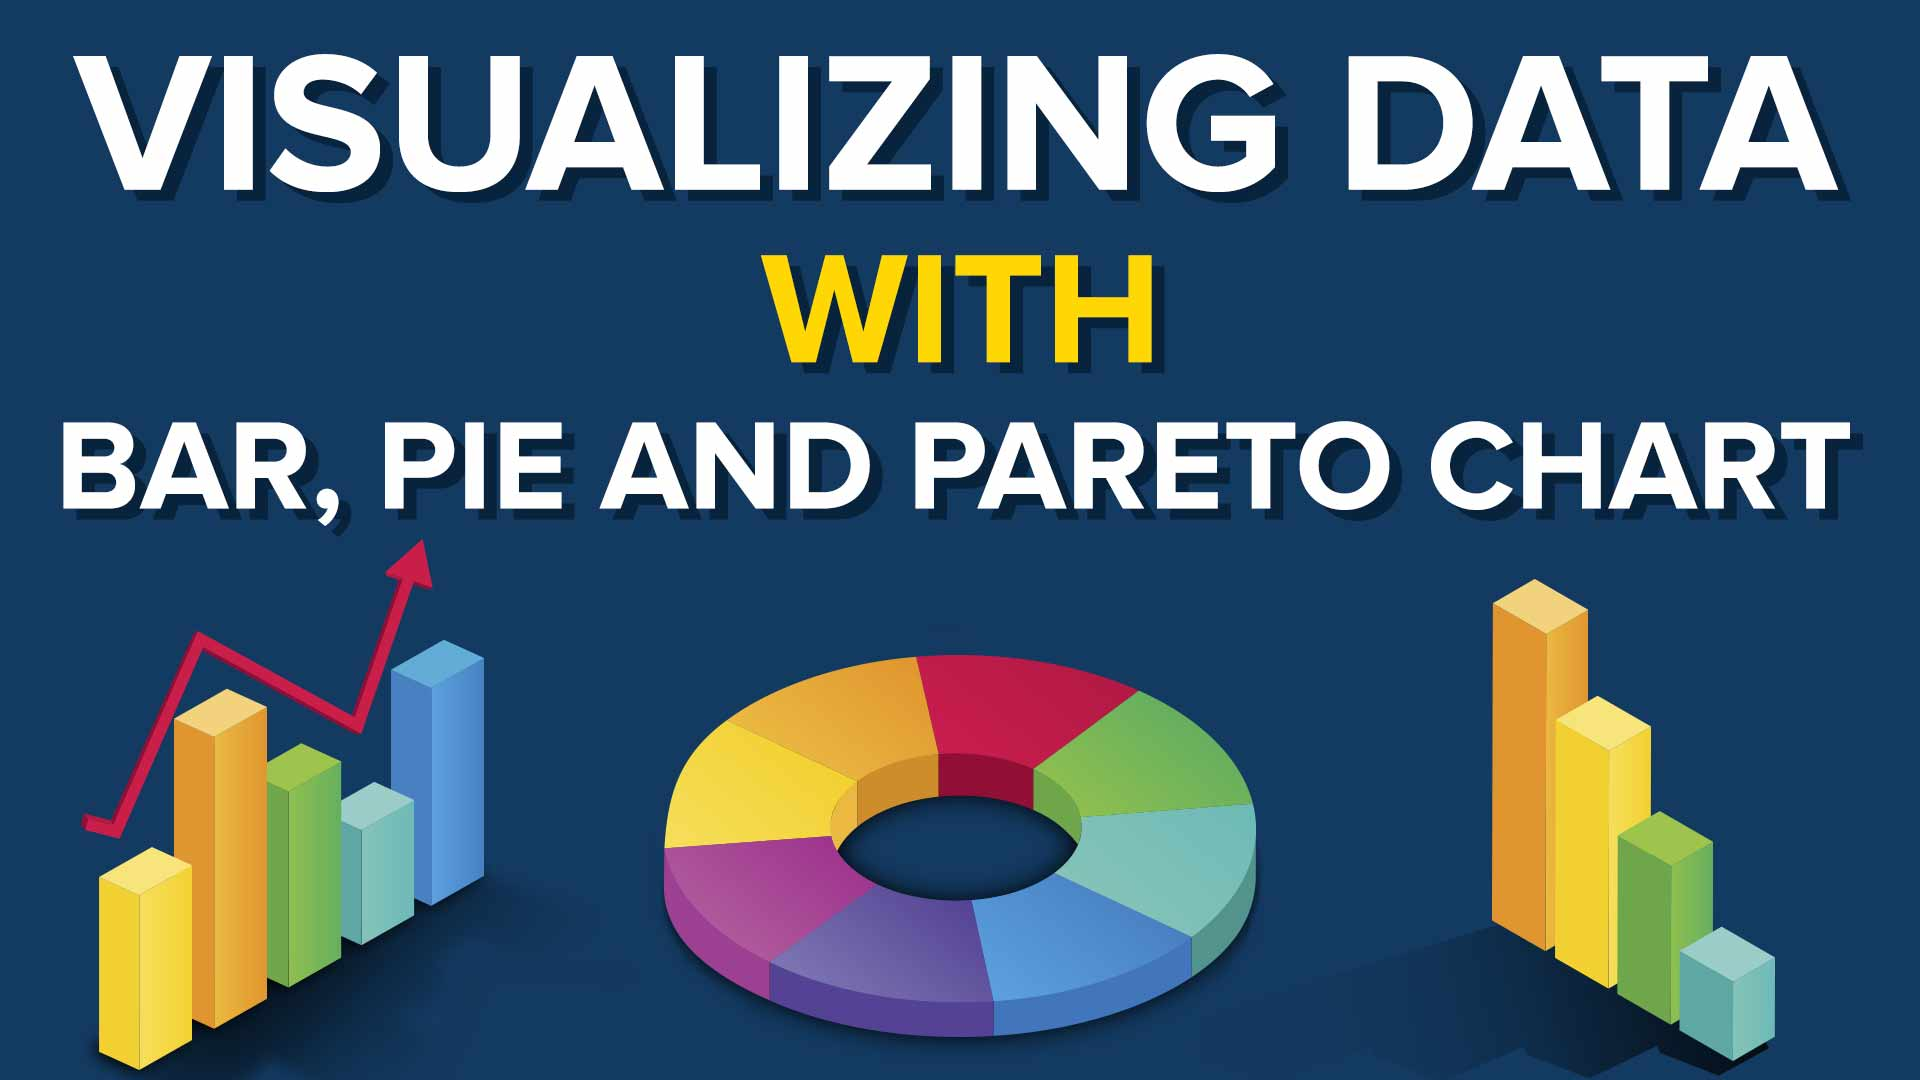 Visualizing Data with Bar, Pie and Pareto Charts